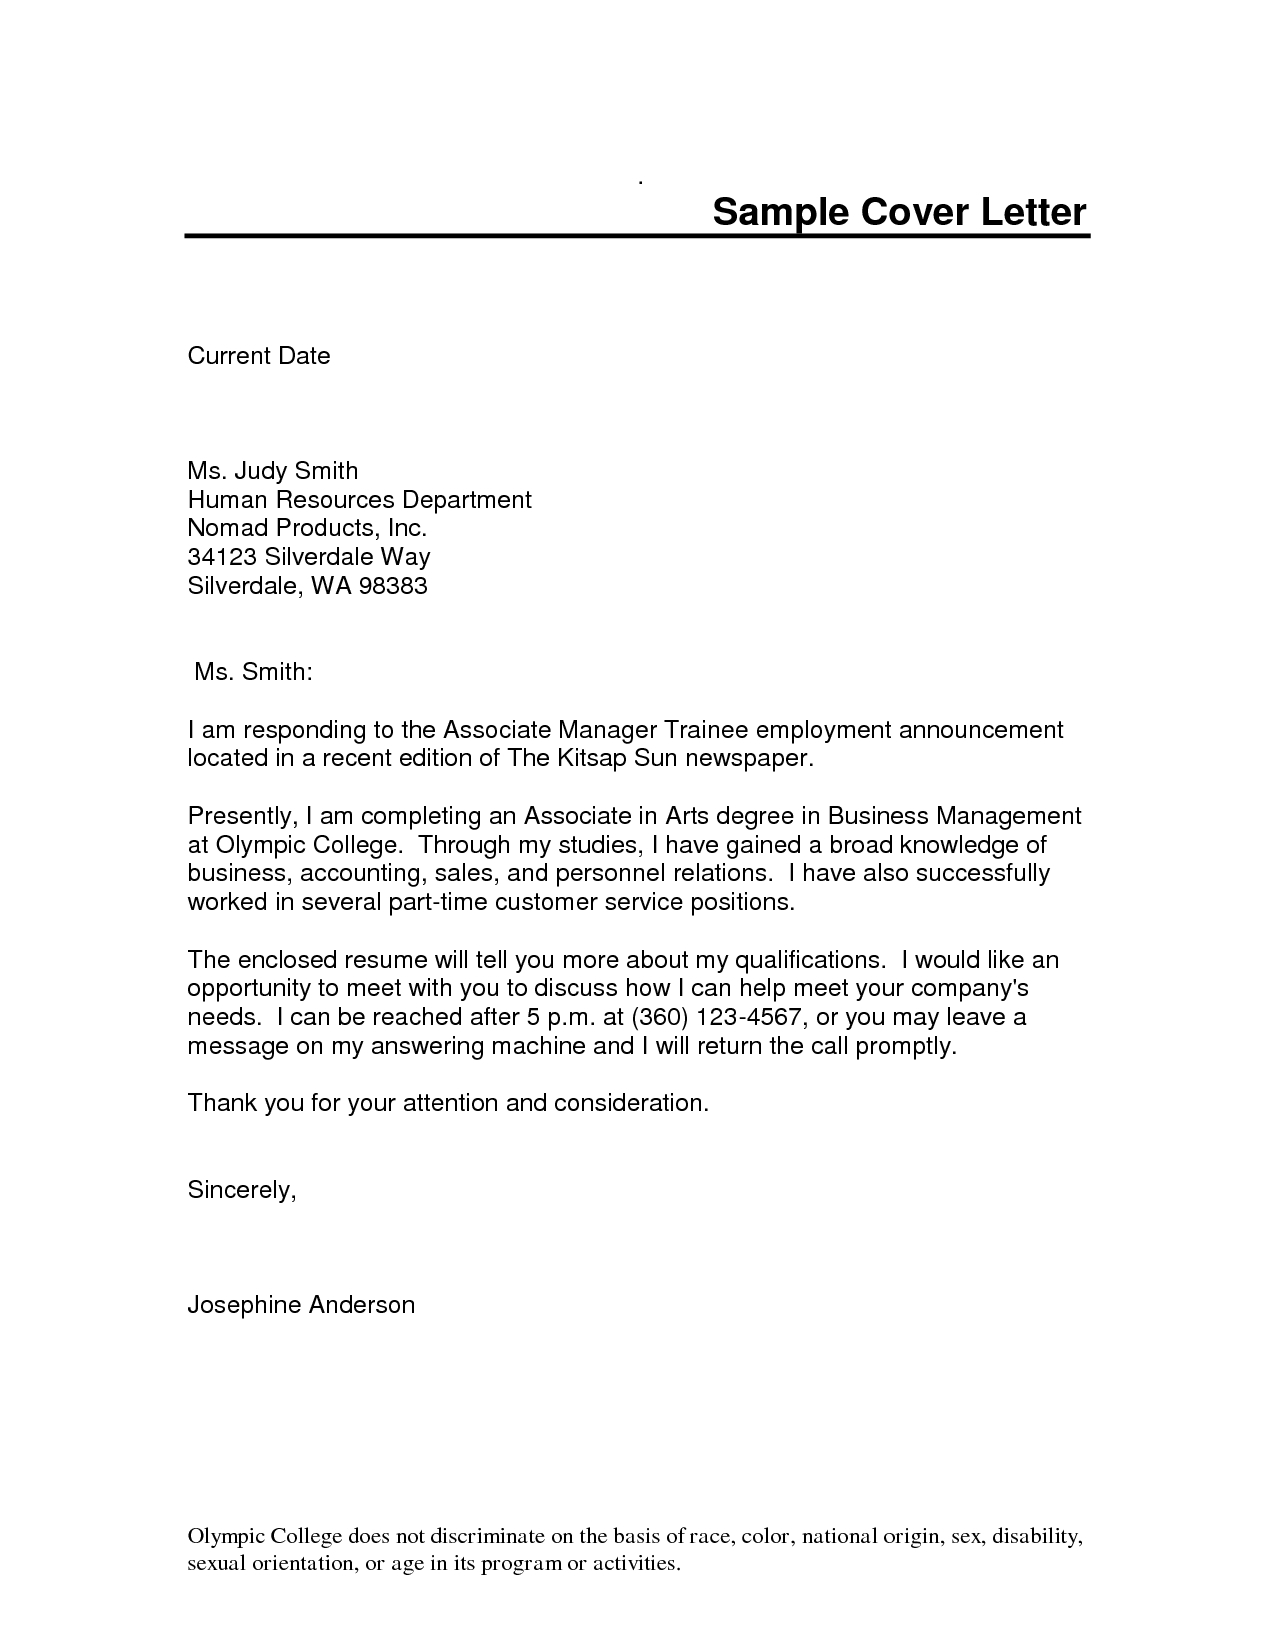 Neighbour complaint letter template samples letter cover templates neighbour complaint letter template editable cover letter templates acurnamedia spiritdancerdesigns Choice Image